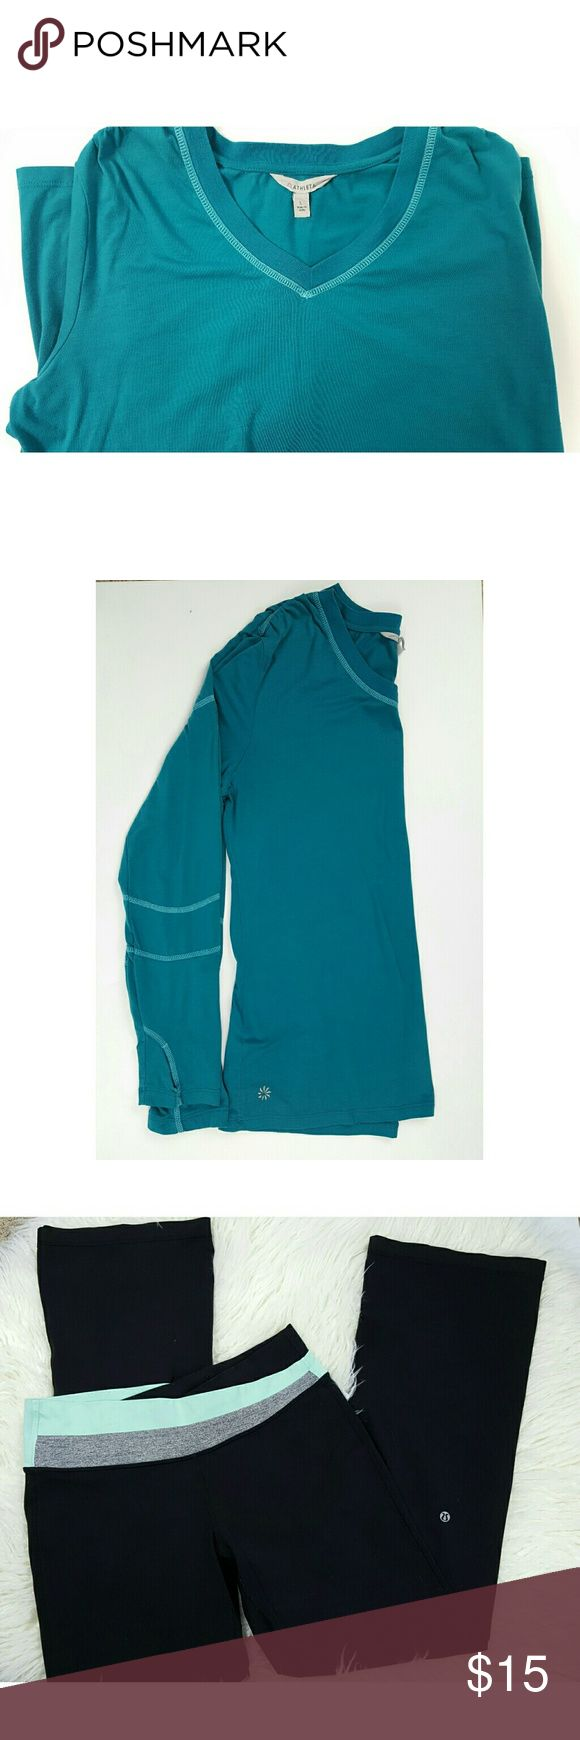 Athleta Women's Long Sleeve Green Top - Great Aqua Green long sleeve top with from Athleta. Lightweight soft stretchy fabric. Also, check out post for Lululemon Yoga Pants.  Great items to bundle!!!! Athleta Tops